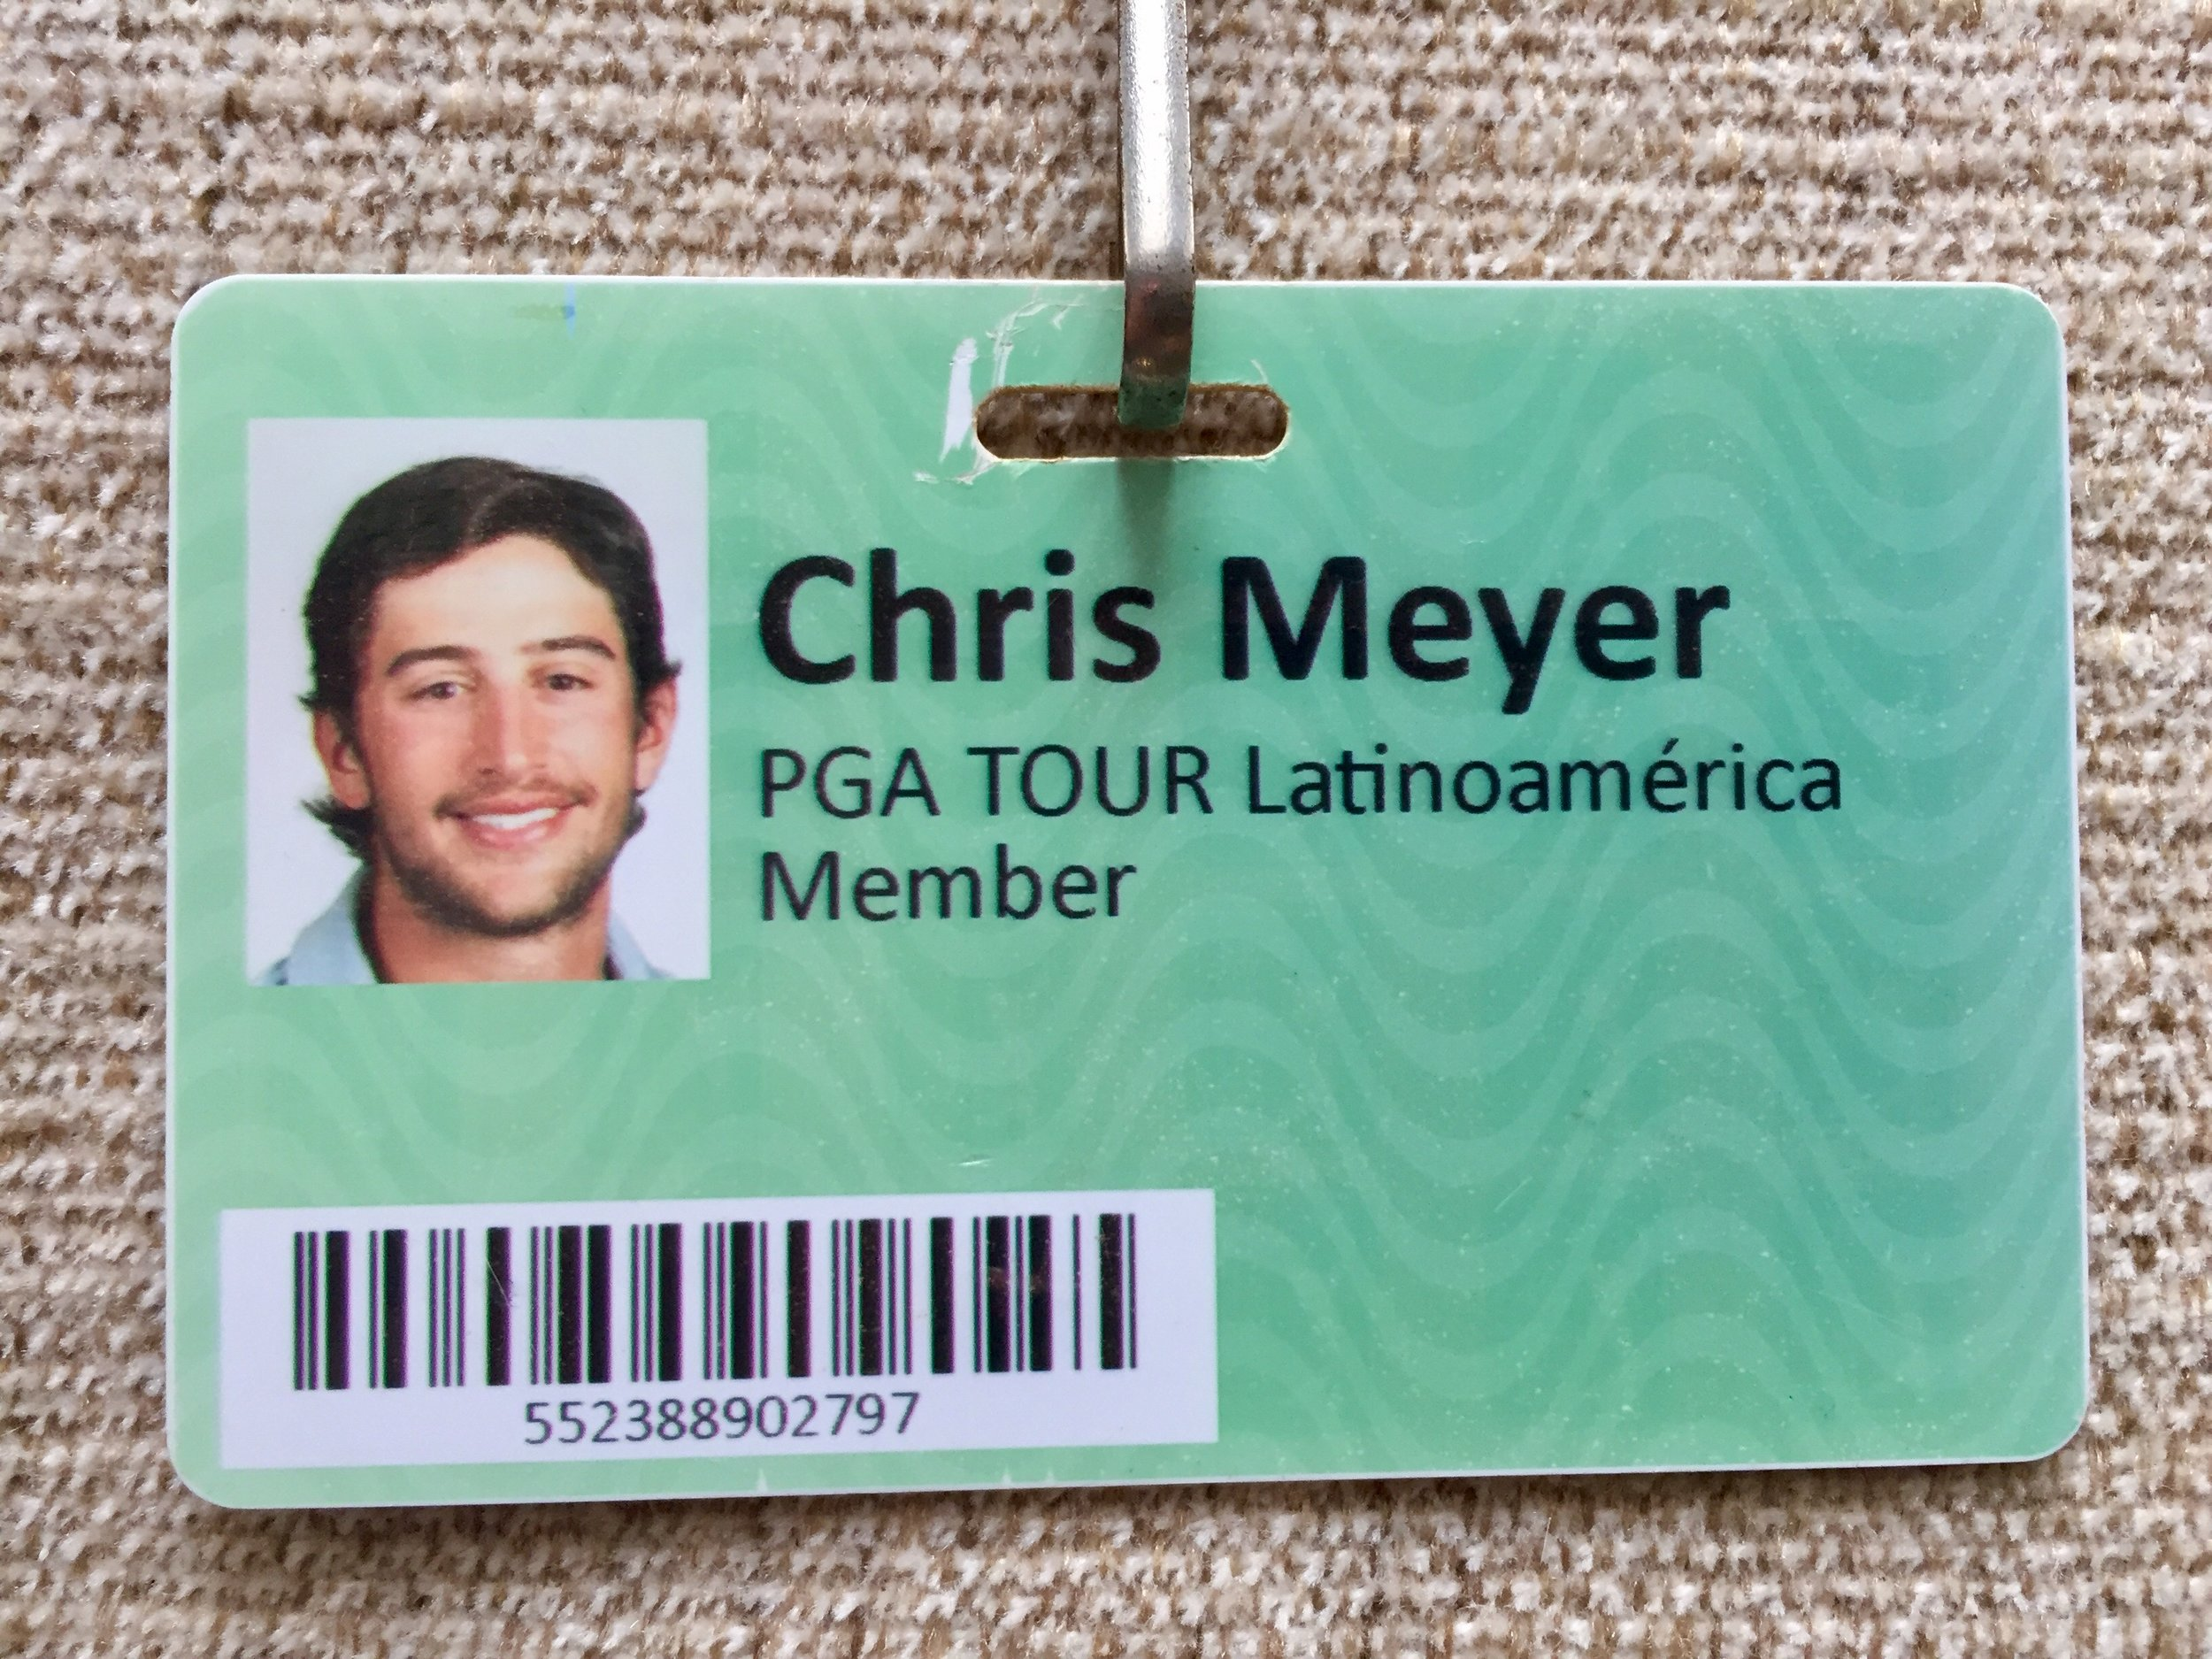 Chris's Tour Card from his first year on PGA Tour LatinoAmerica